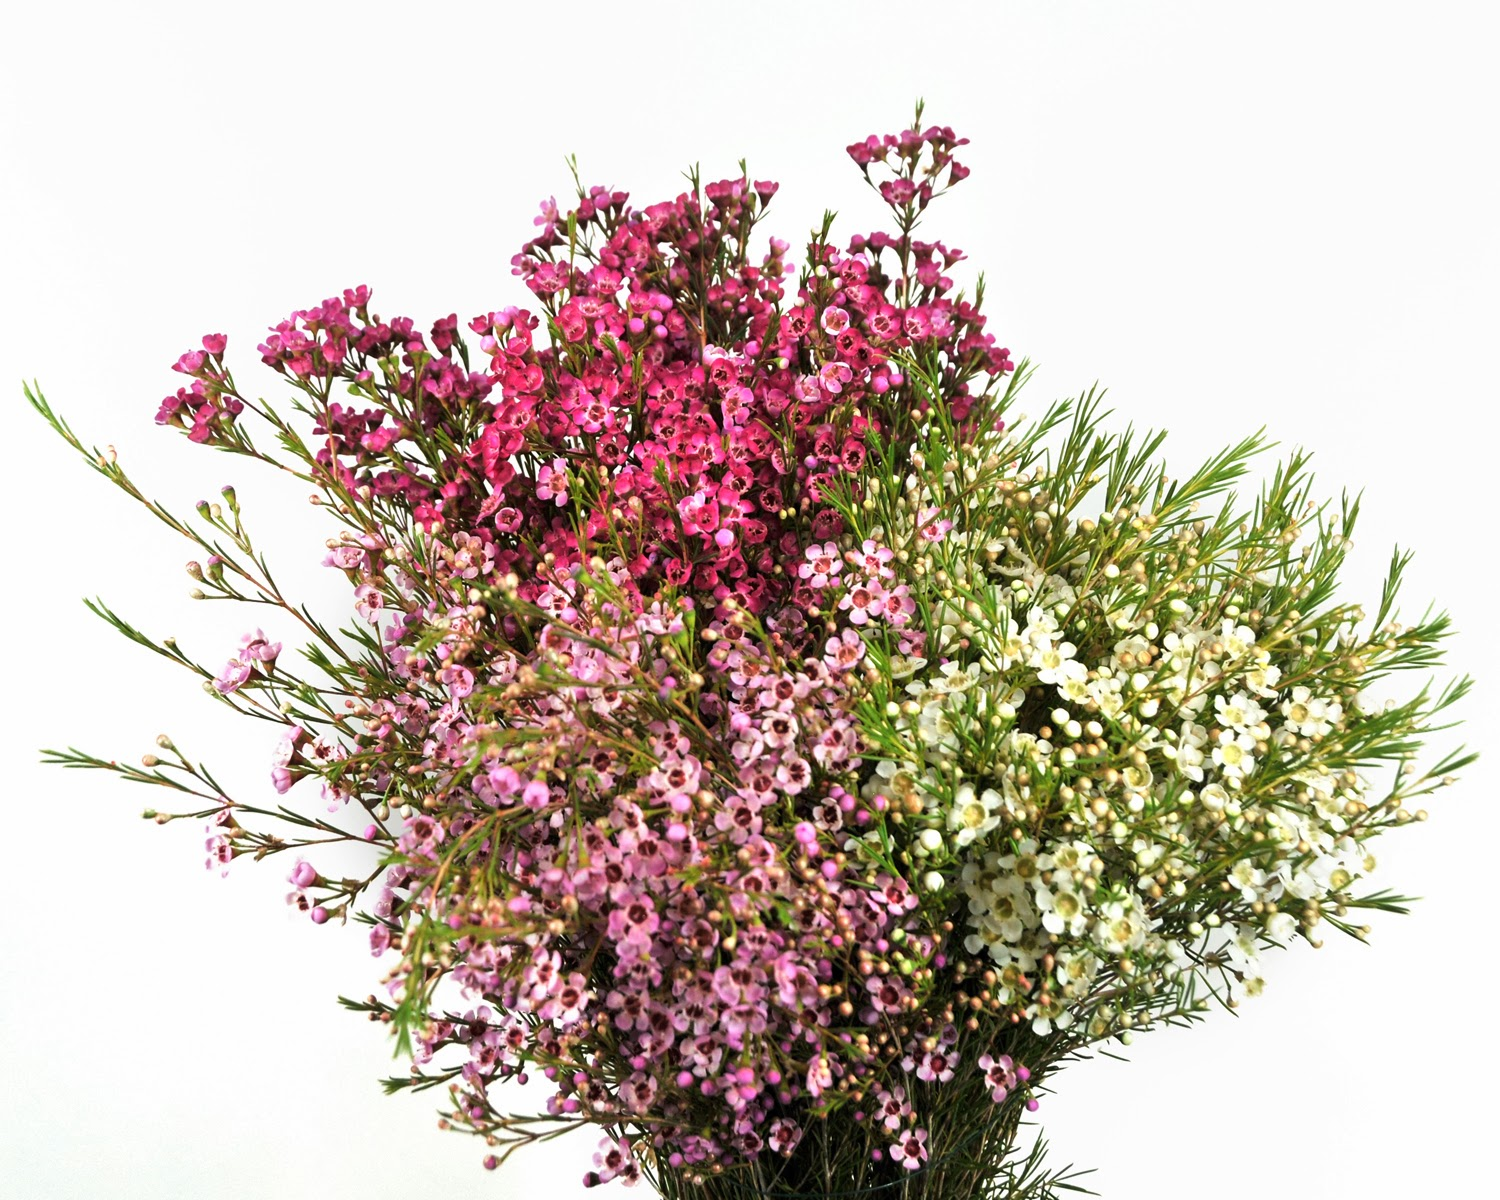 Wax Now Harvesting Waxflower